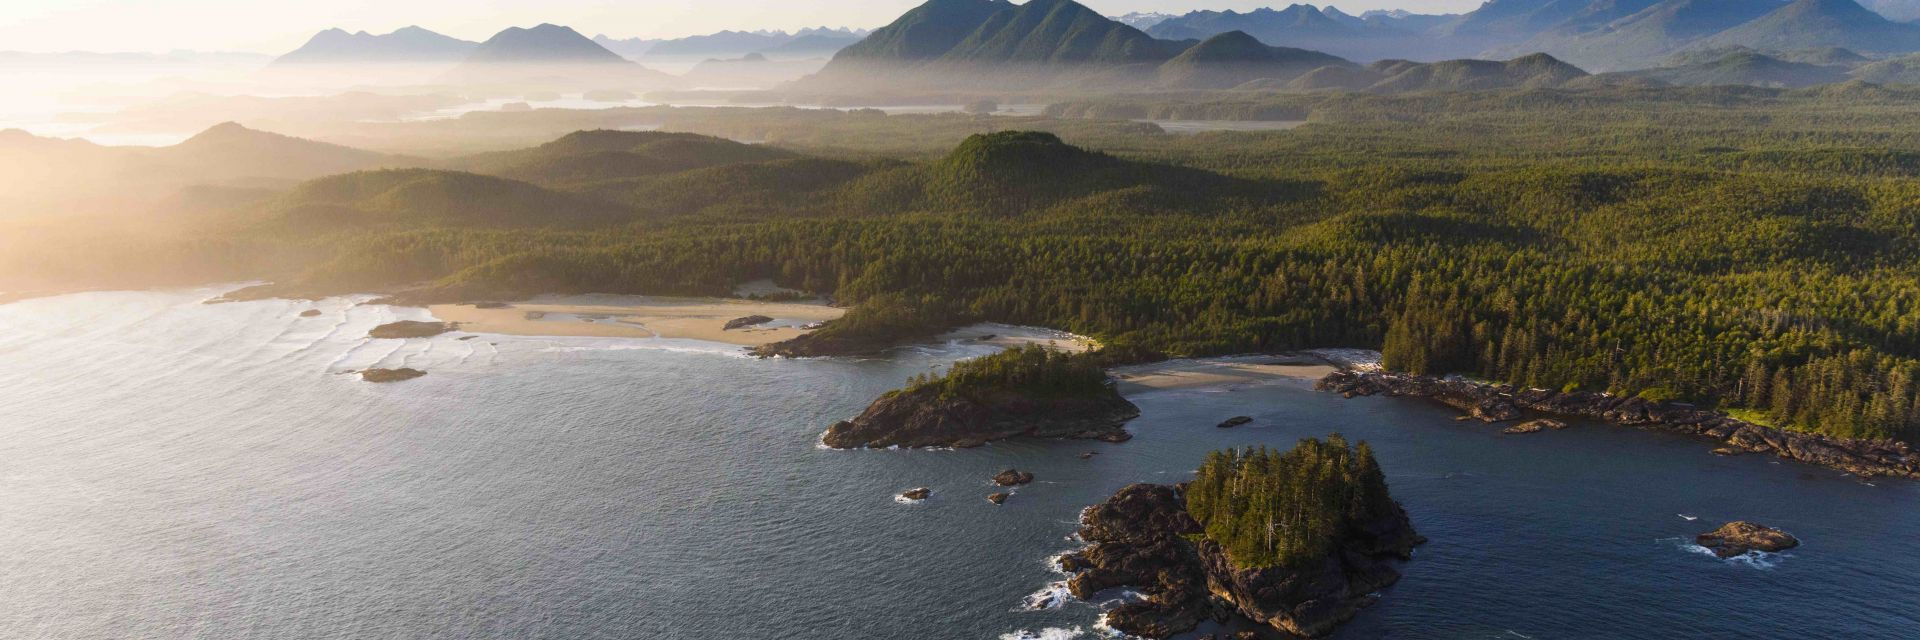 Pacific Rim National Park in British Columbia